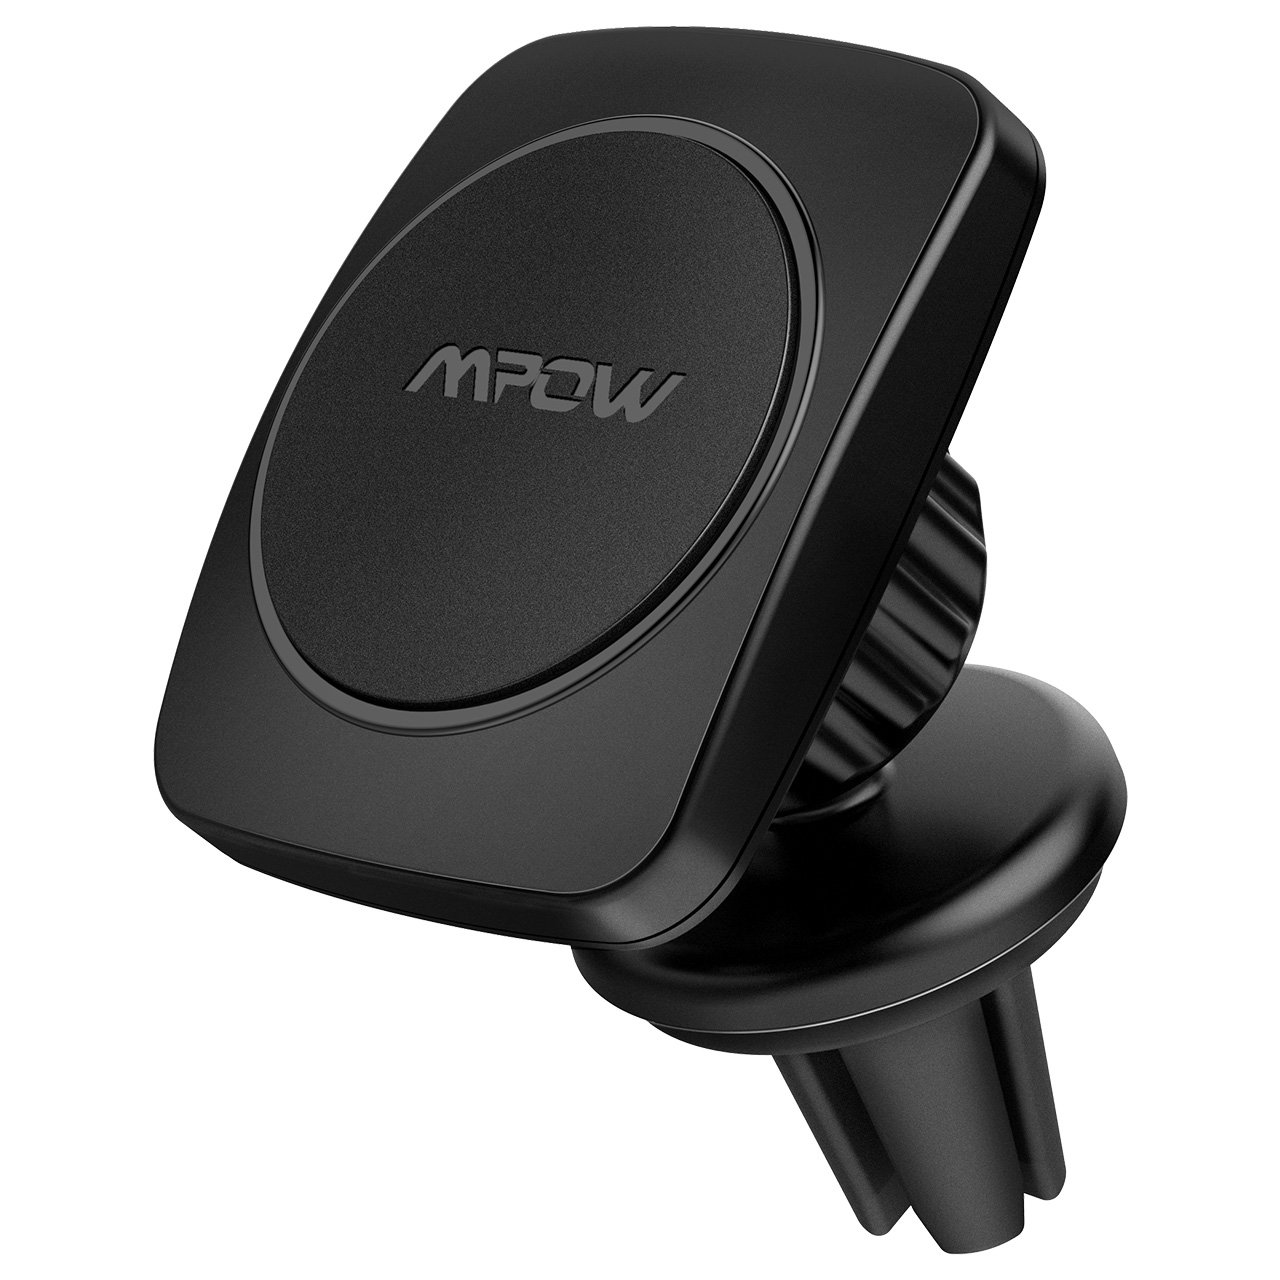 Mpow Car Phone Mount,Air Vent Phone Holder for Car with Adjustable Car Phone Holder for iPhone 8/8Plus/7/7Plus/6s/6Plus/5S, Galaxy S5/S6/S7/S8, Google Nexus, LG, Huawei MCM11